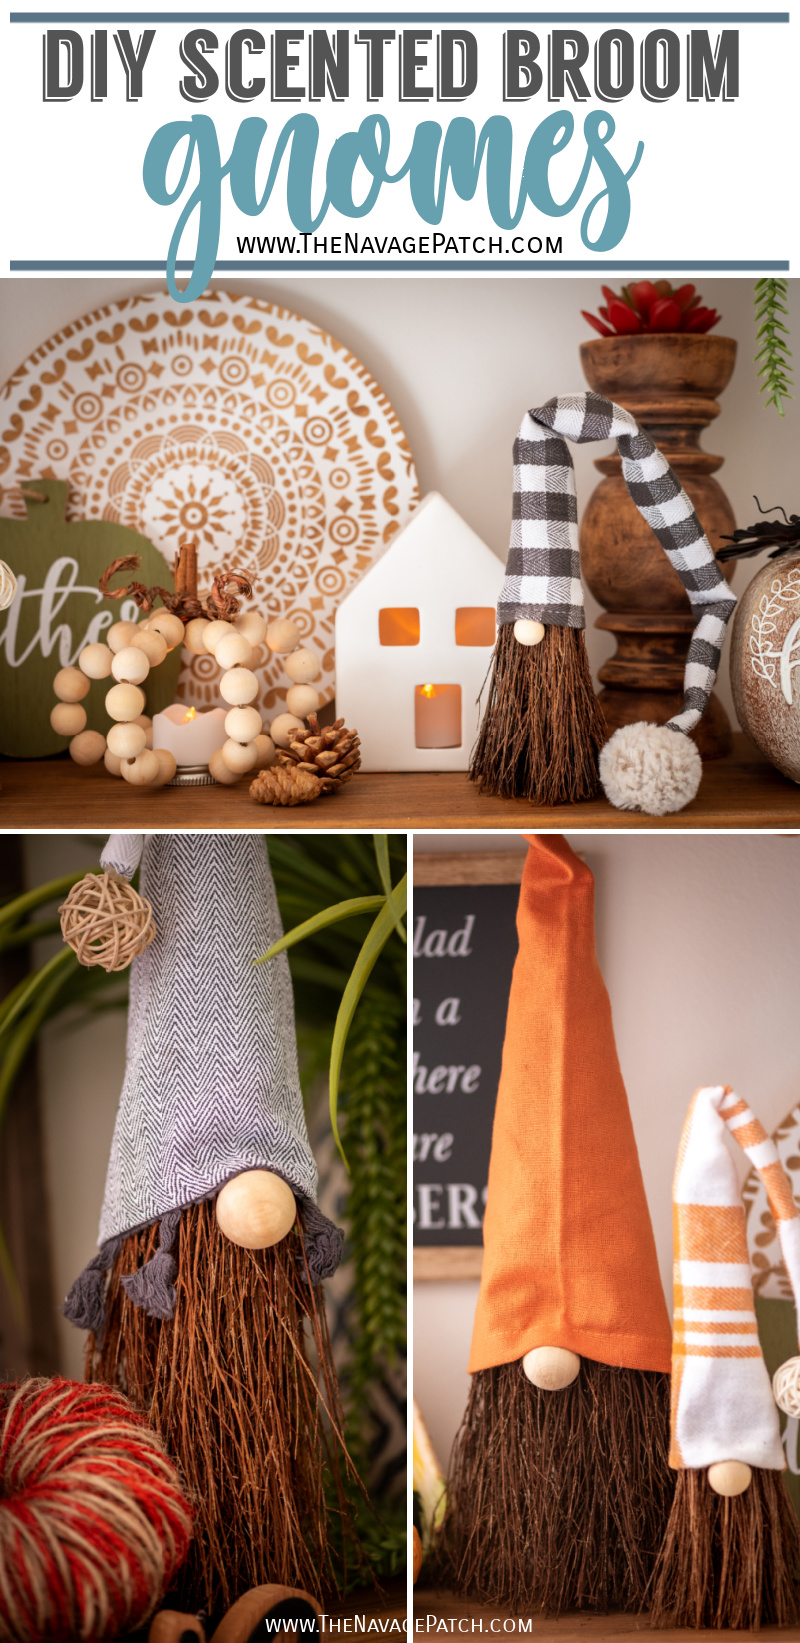 DIY Scented Broom Gnomes – TheNavagePatch.com